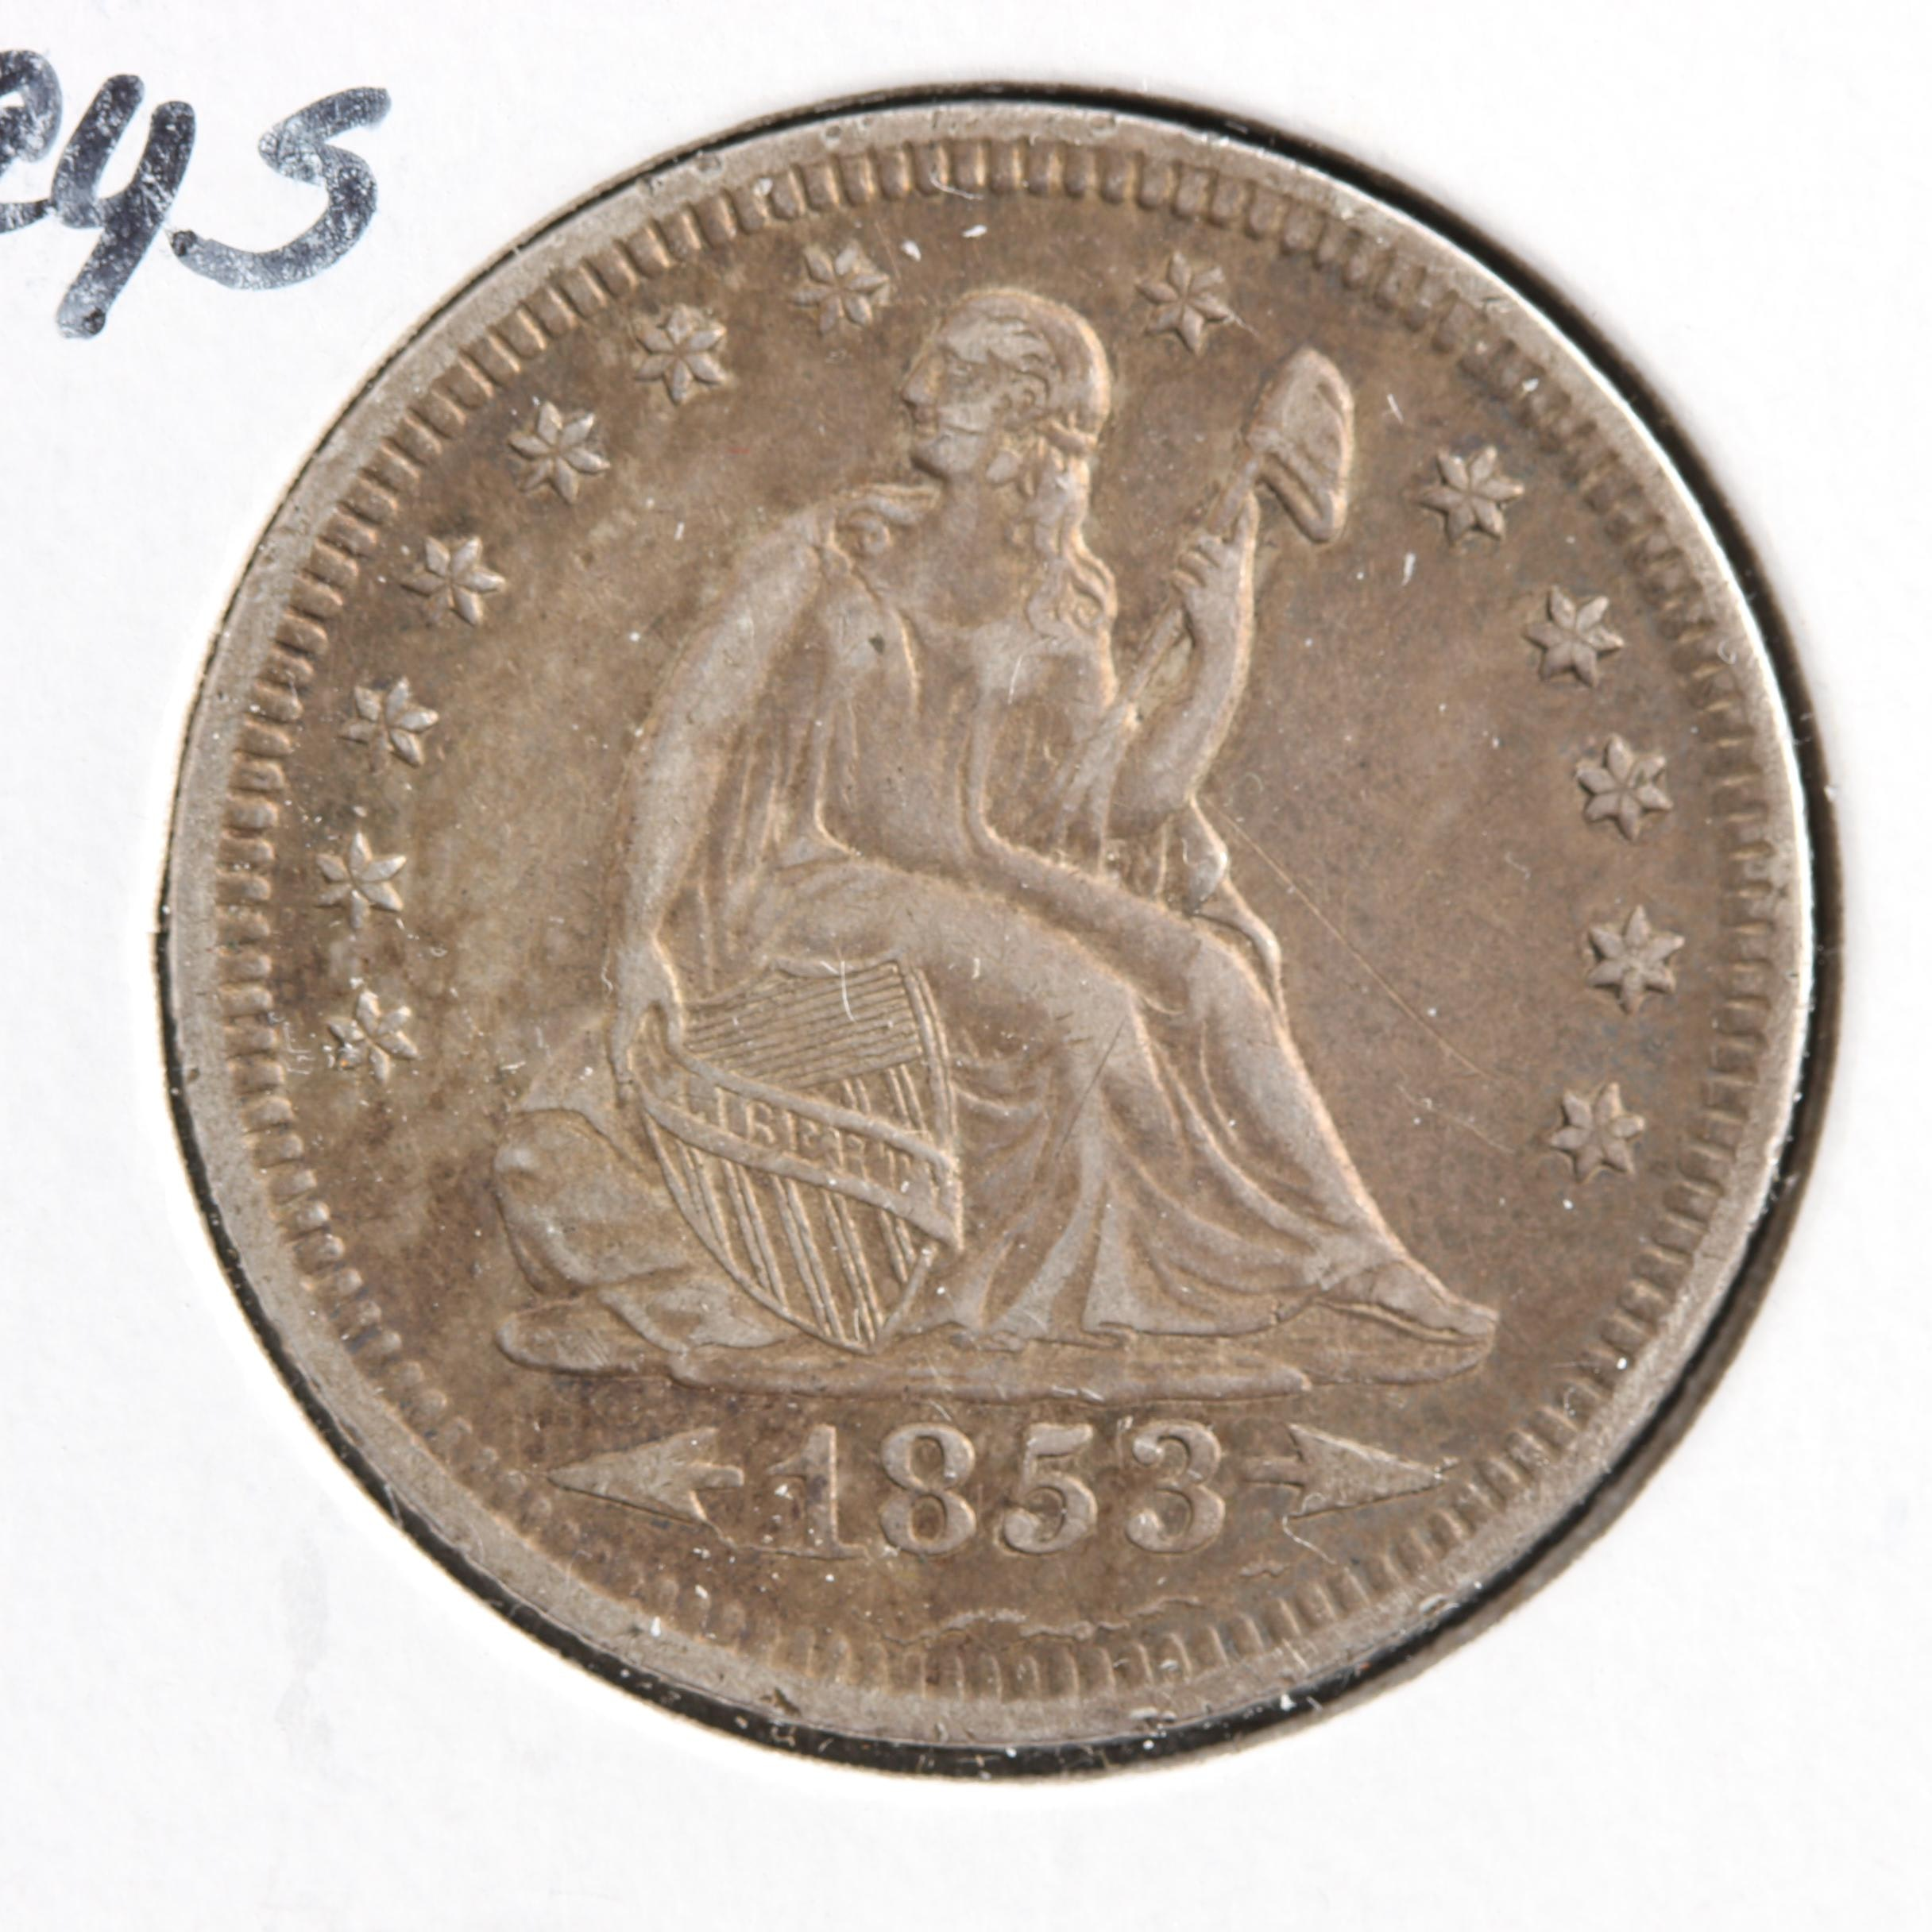 1853-O Liberty Seated Silver Quarter, With Arrows and Rays Variety